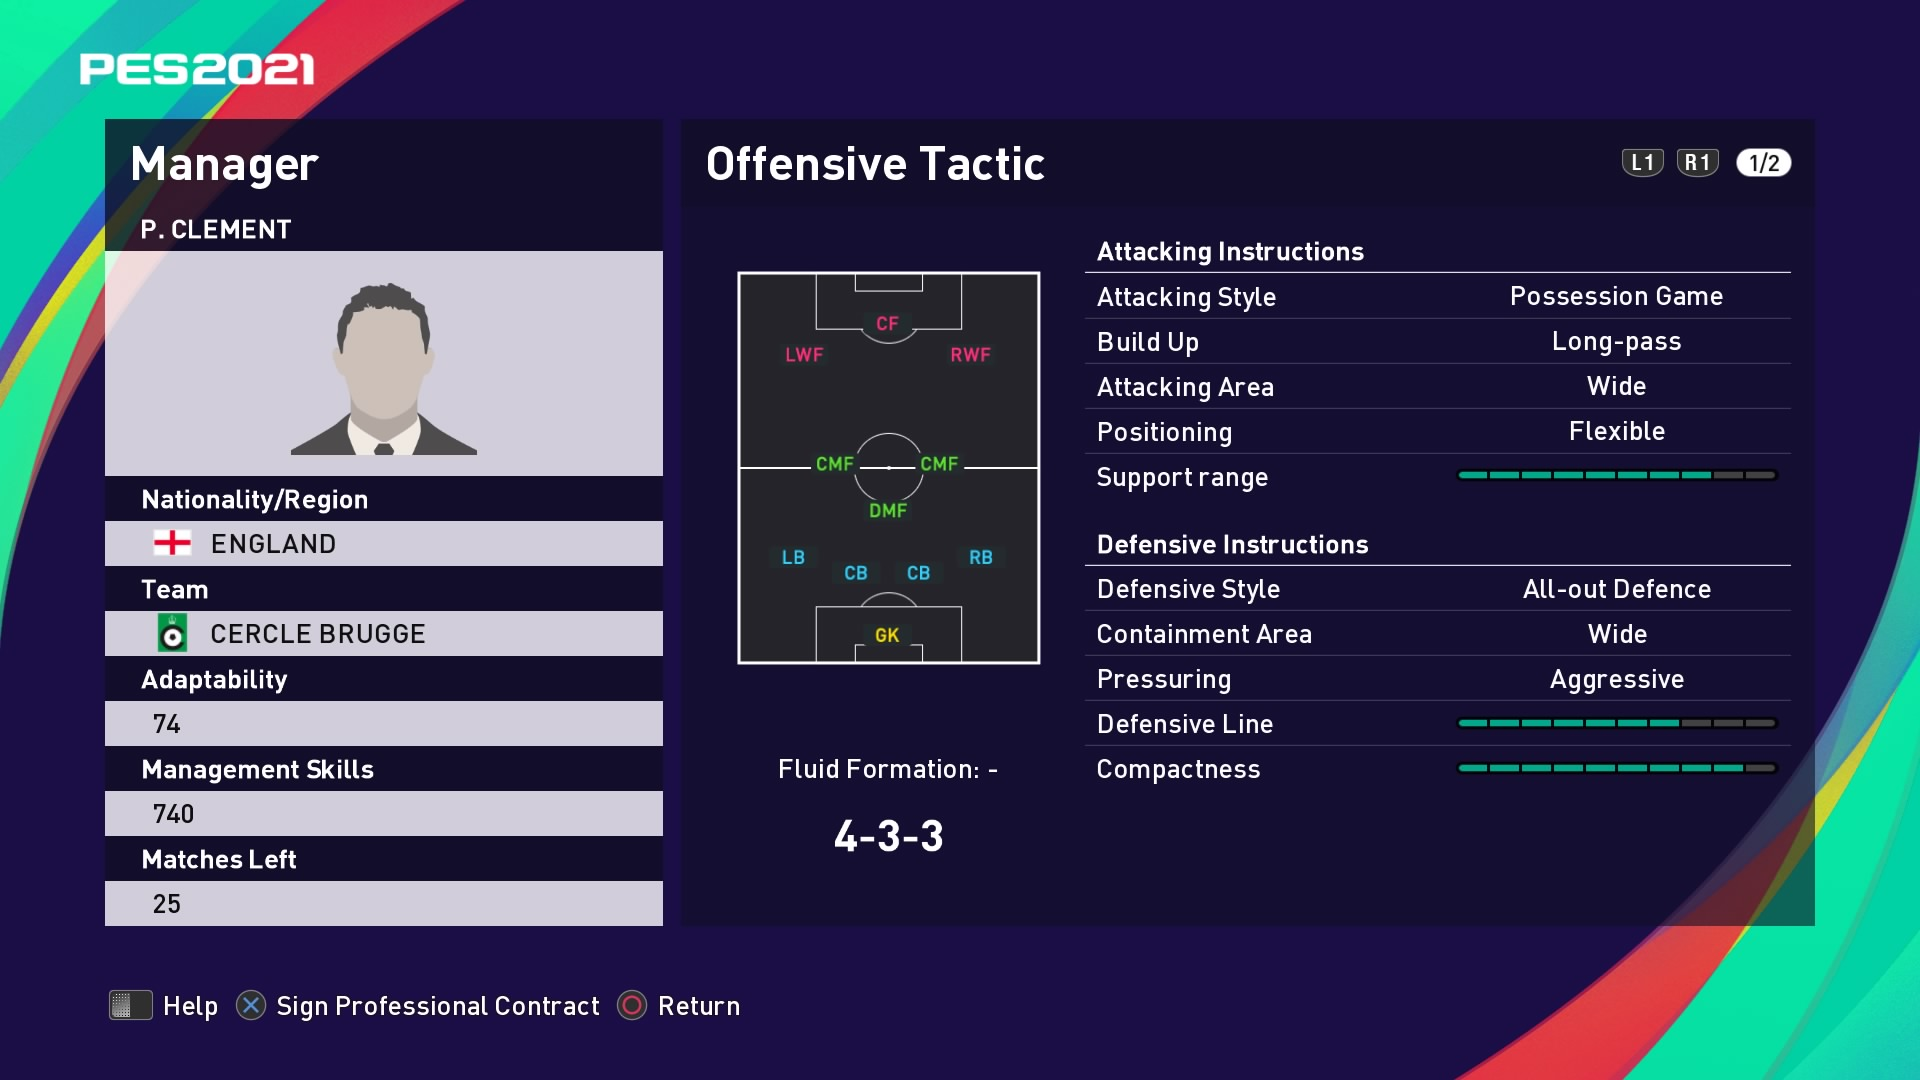 P. Clement (Paul Clement) Offensive Tactic in PES 2021 myClub